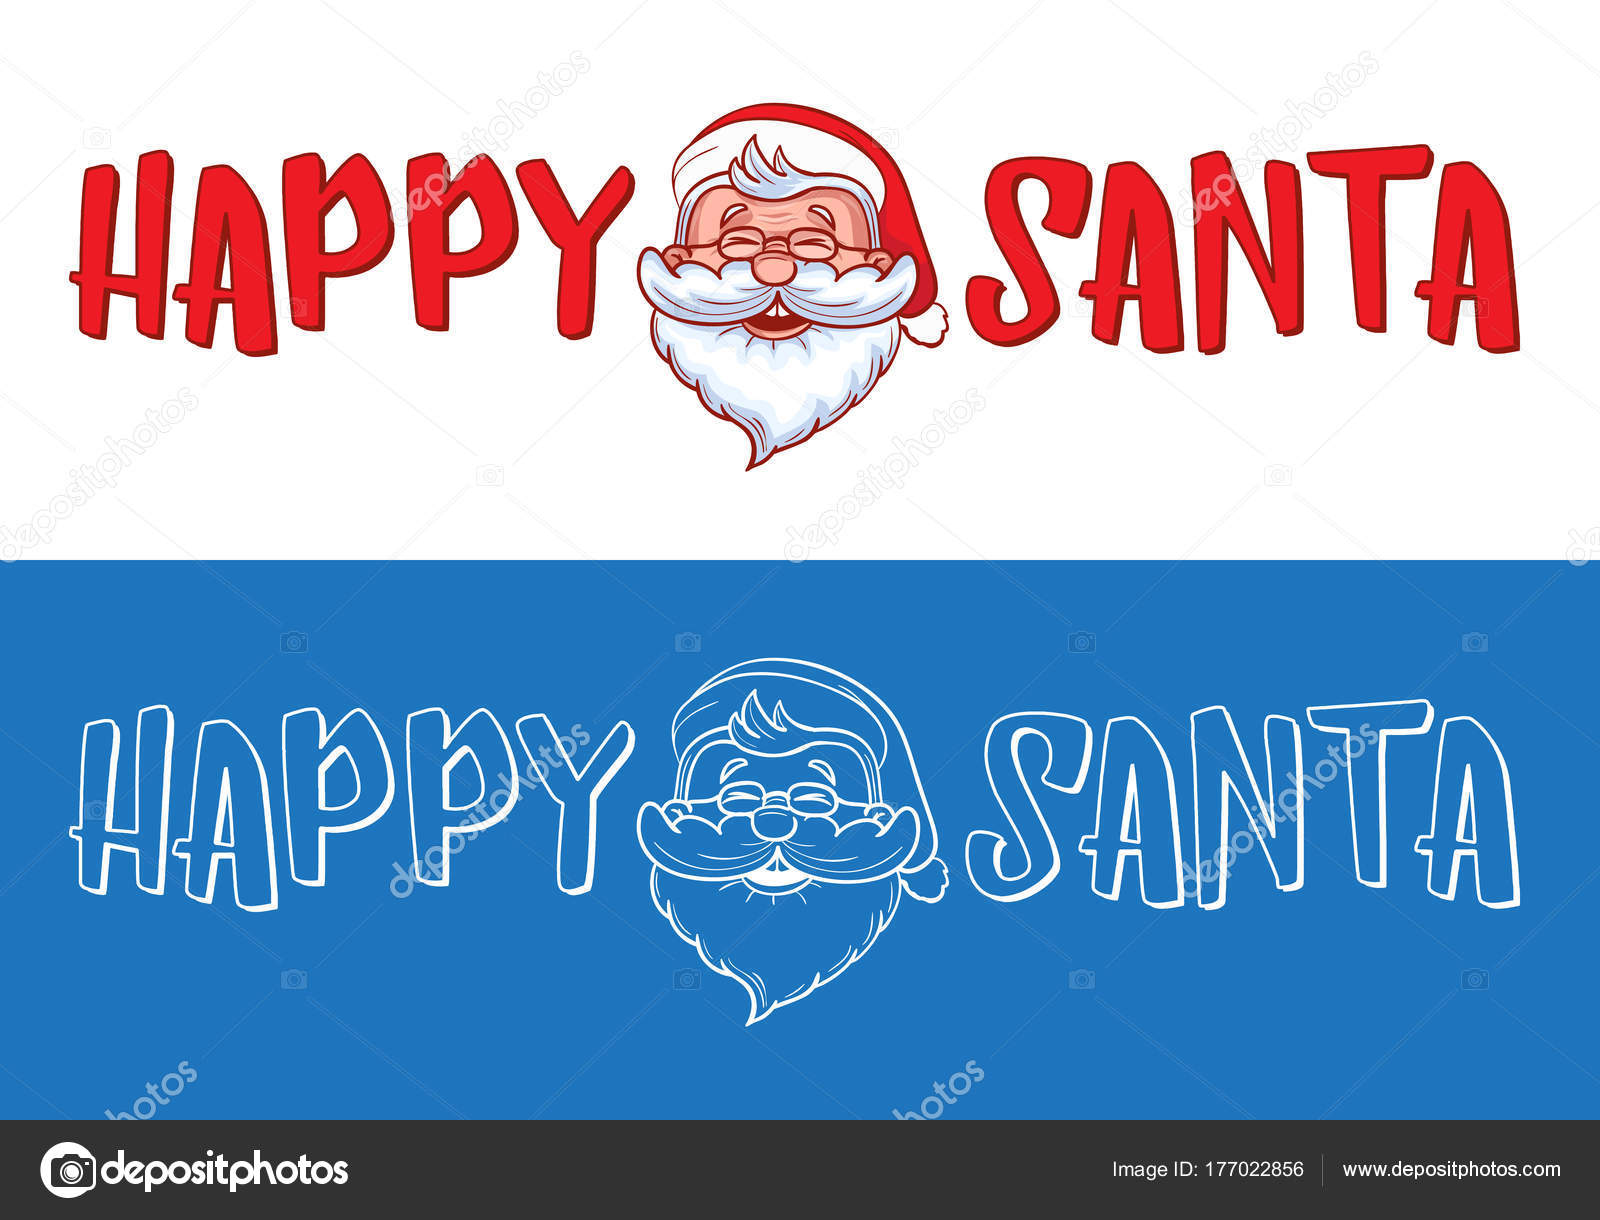 Happy Santa Logo Design For Christmas Greeting Cards Gifts Banners